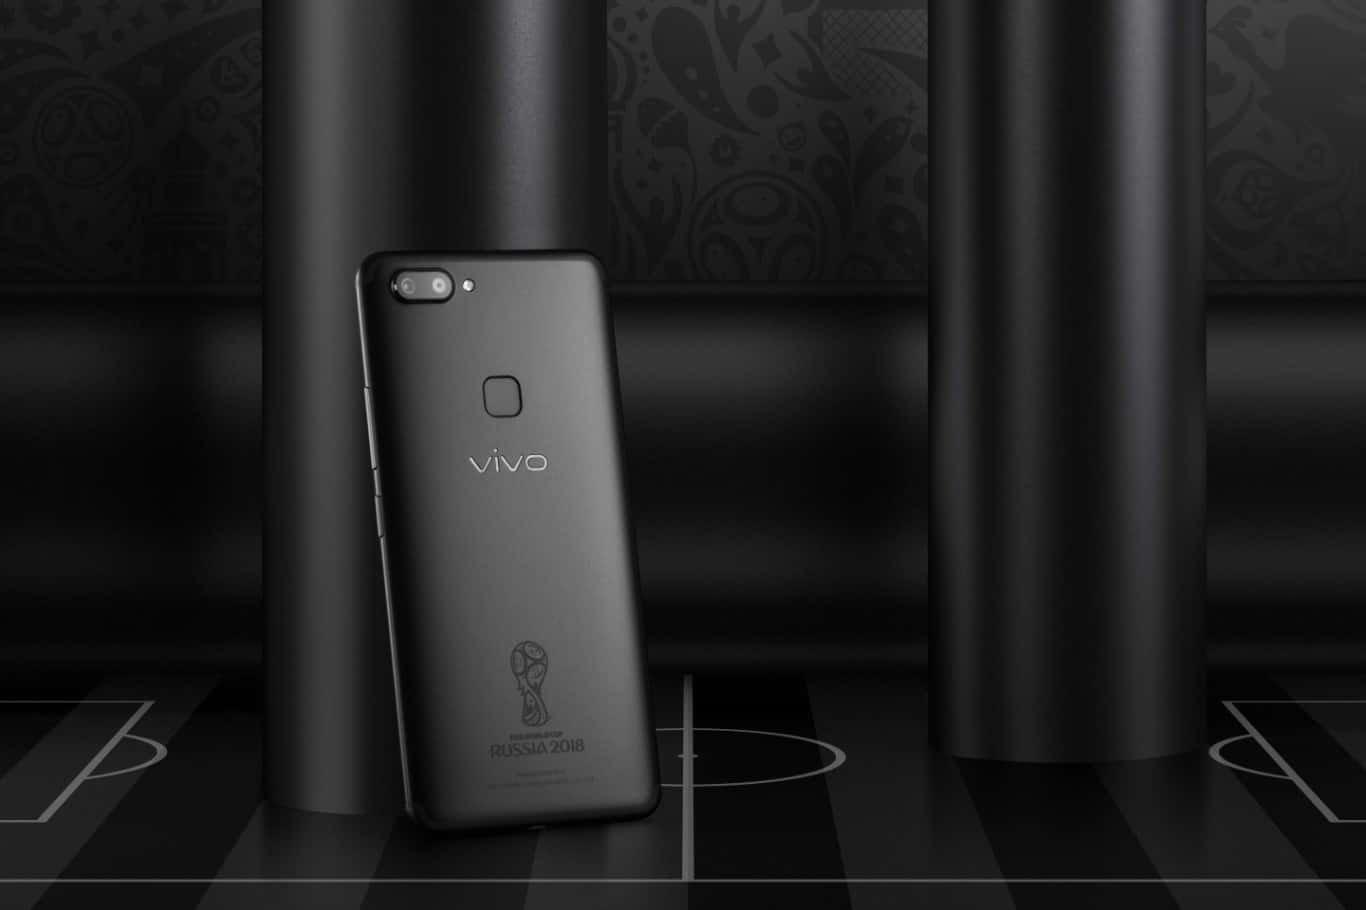 X20, Vivo Unveils Special Edition of X20 Smartphone for 2018 FIFA World Cup